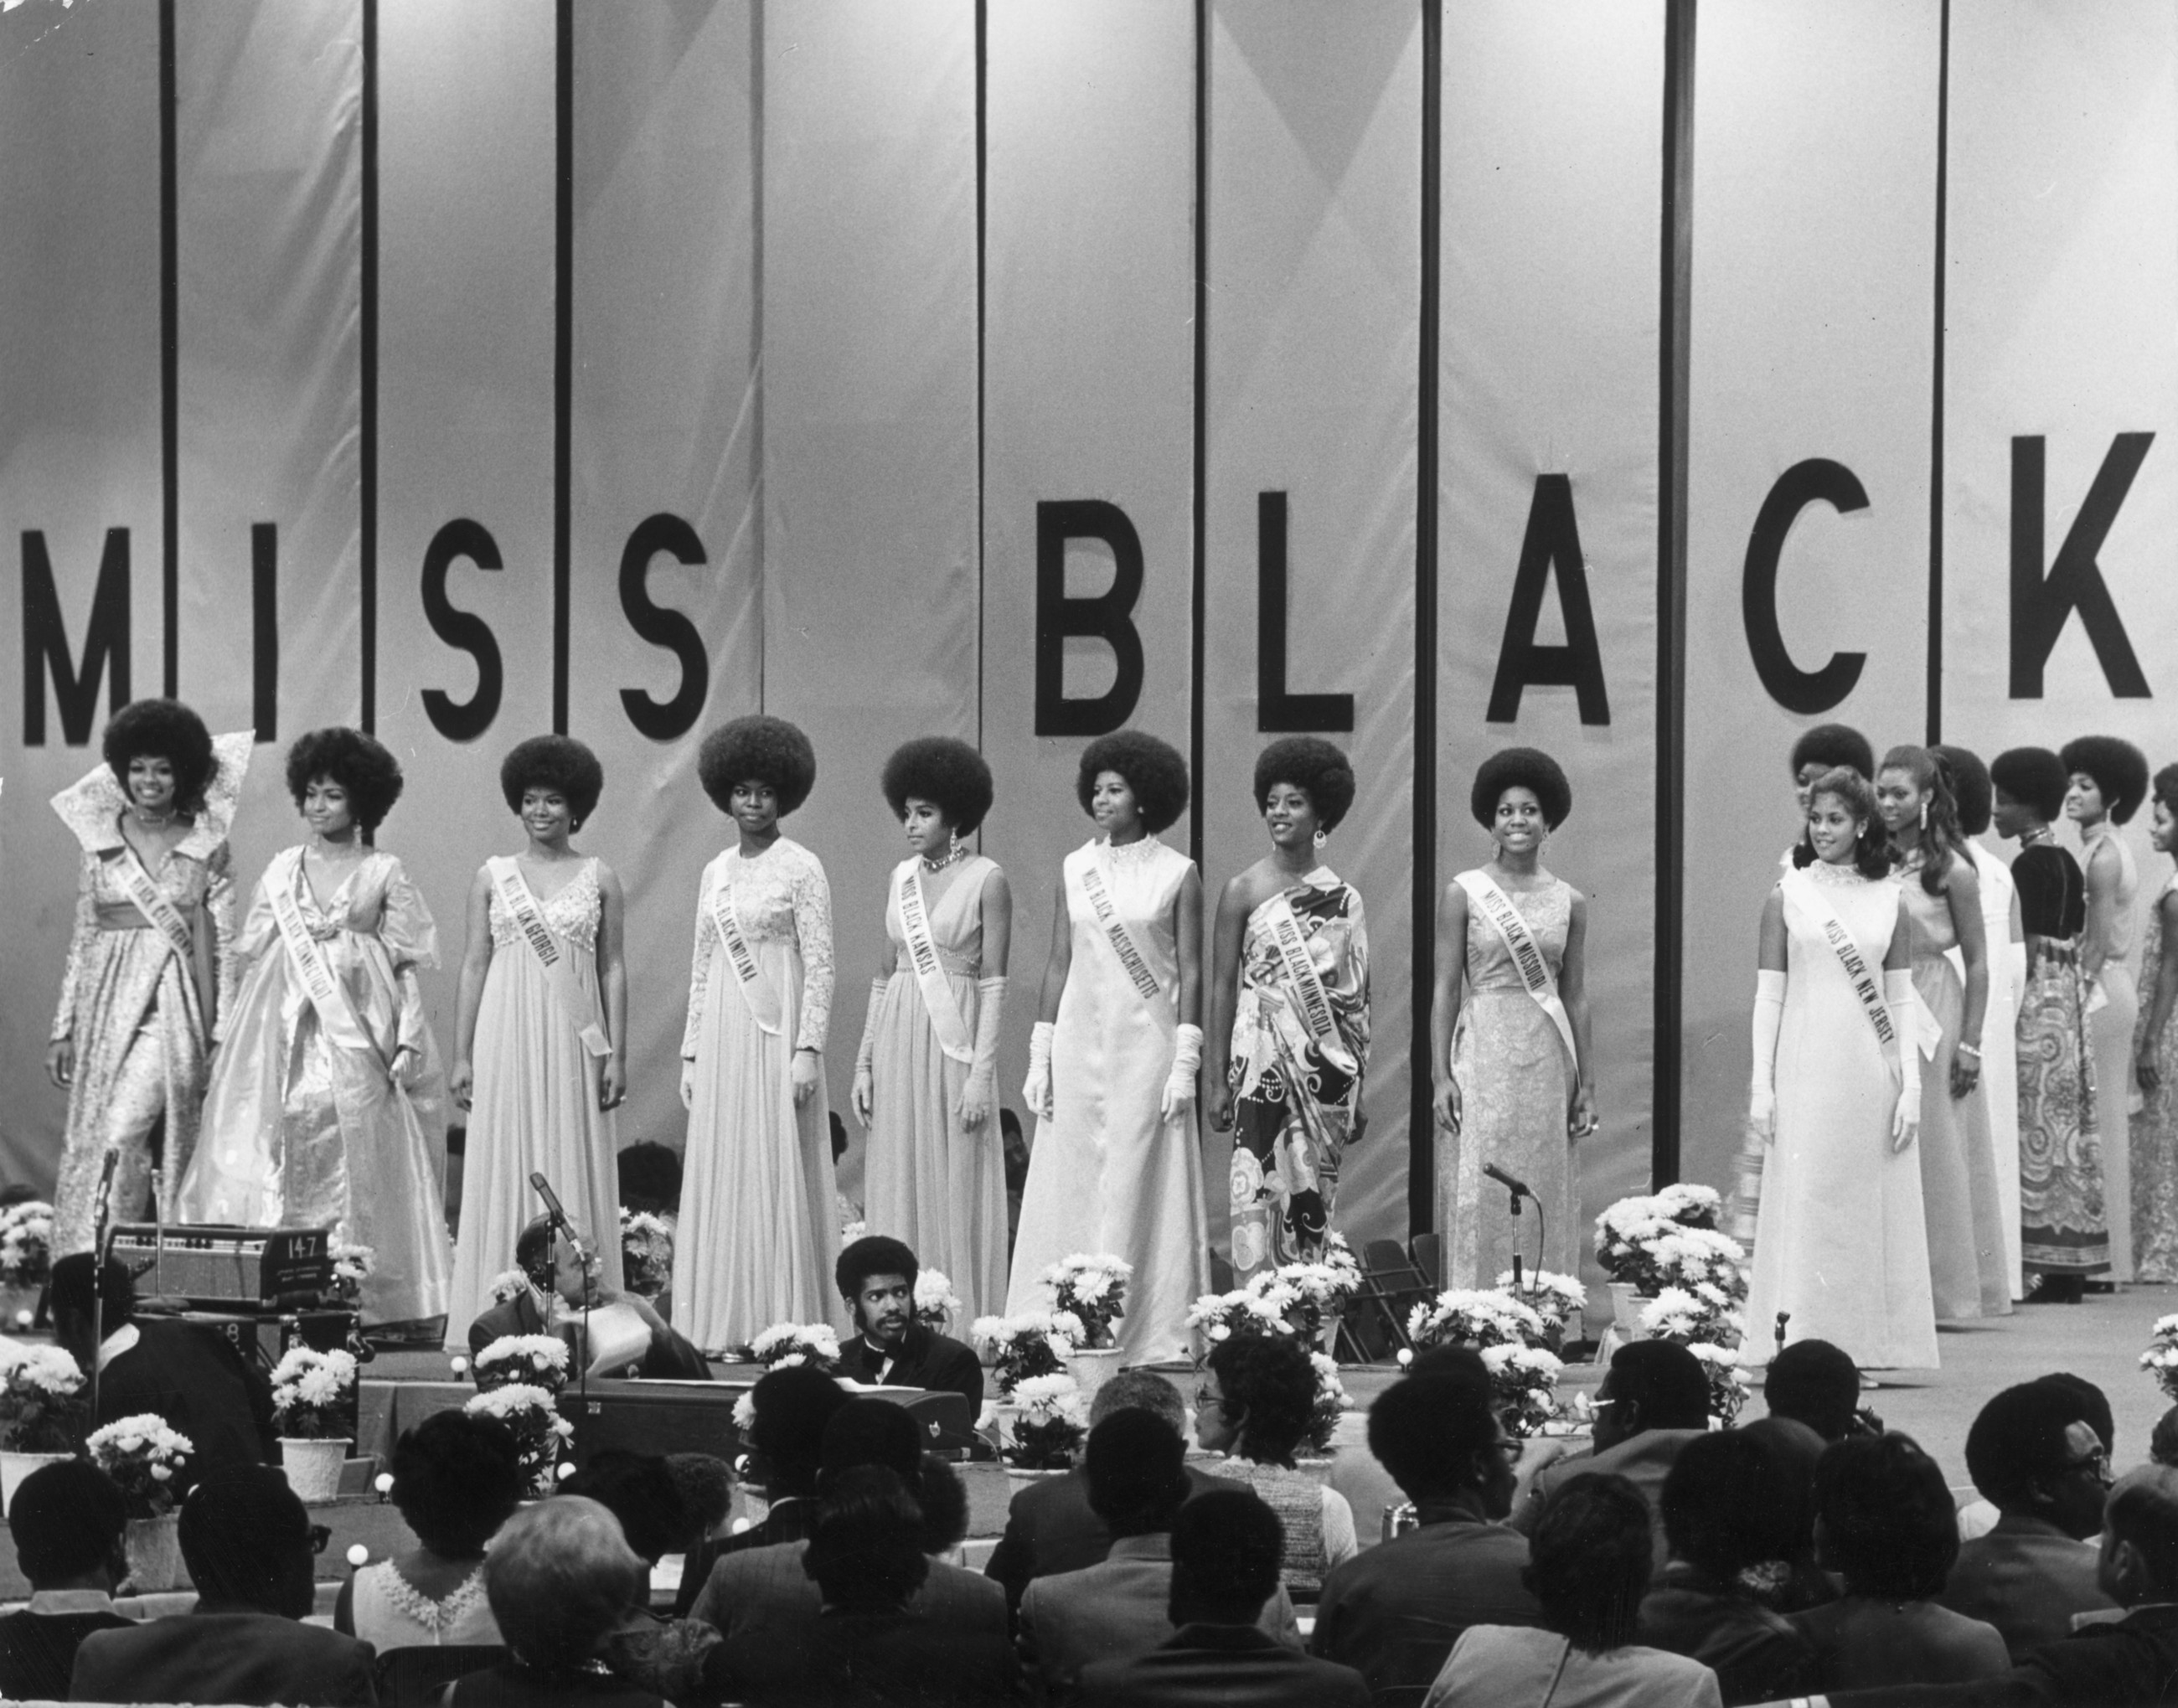 Miss America 1968: When civil rights and feminist activists converged